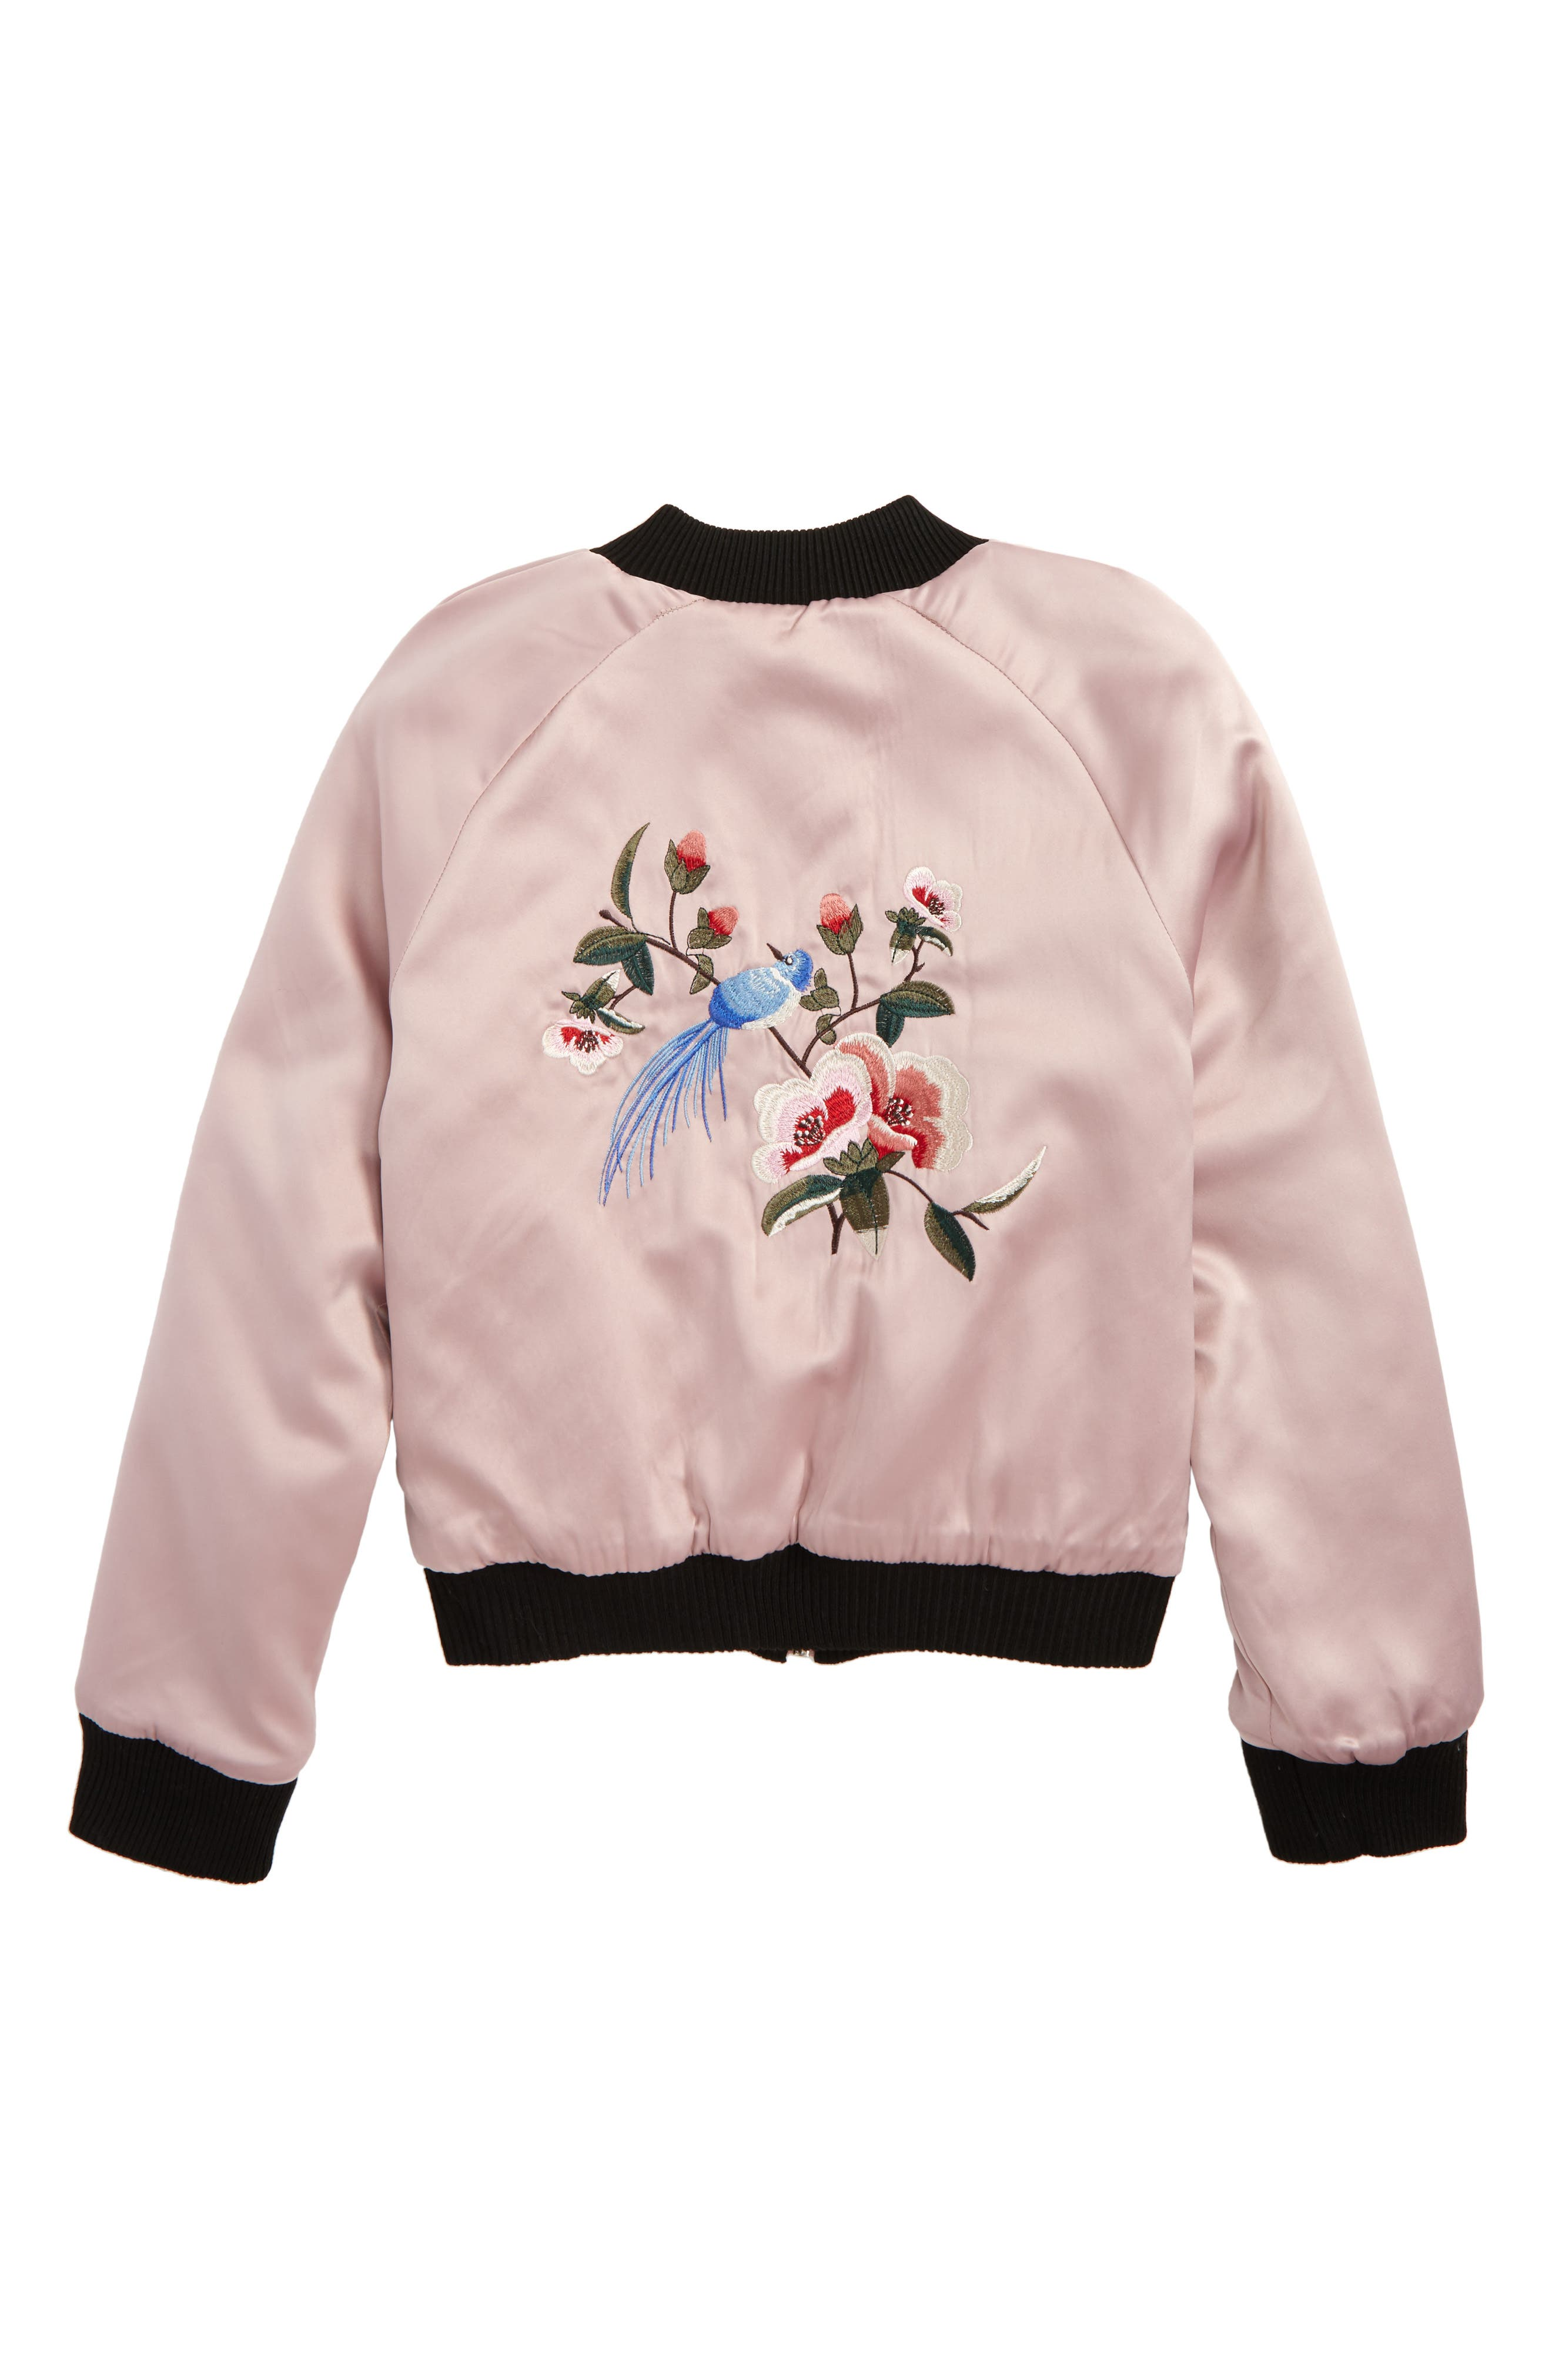 Embroidered Reversible Bomber Jacket,                             Alternate thumbnail 3, color,                             008